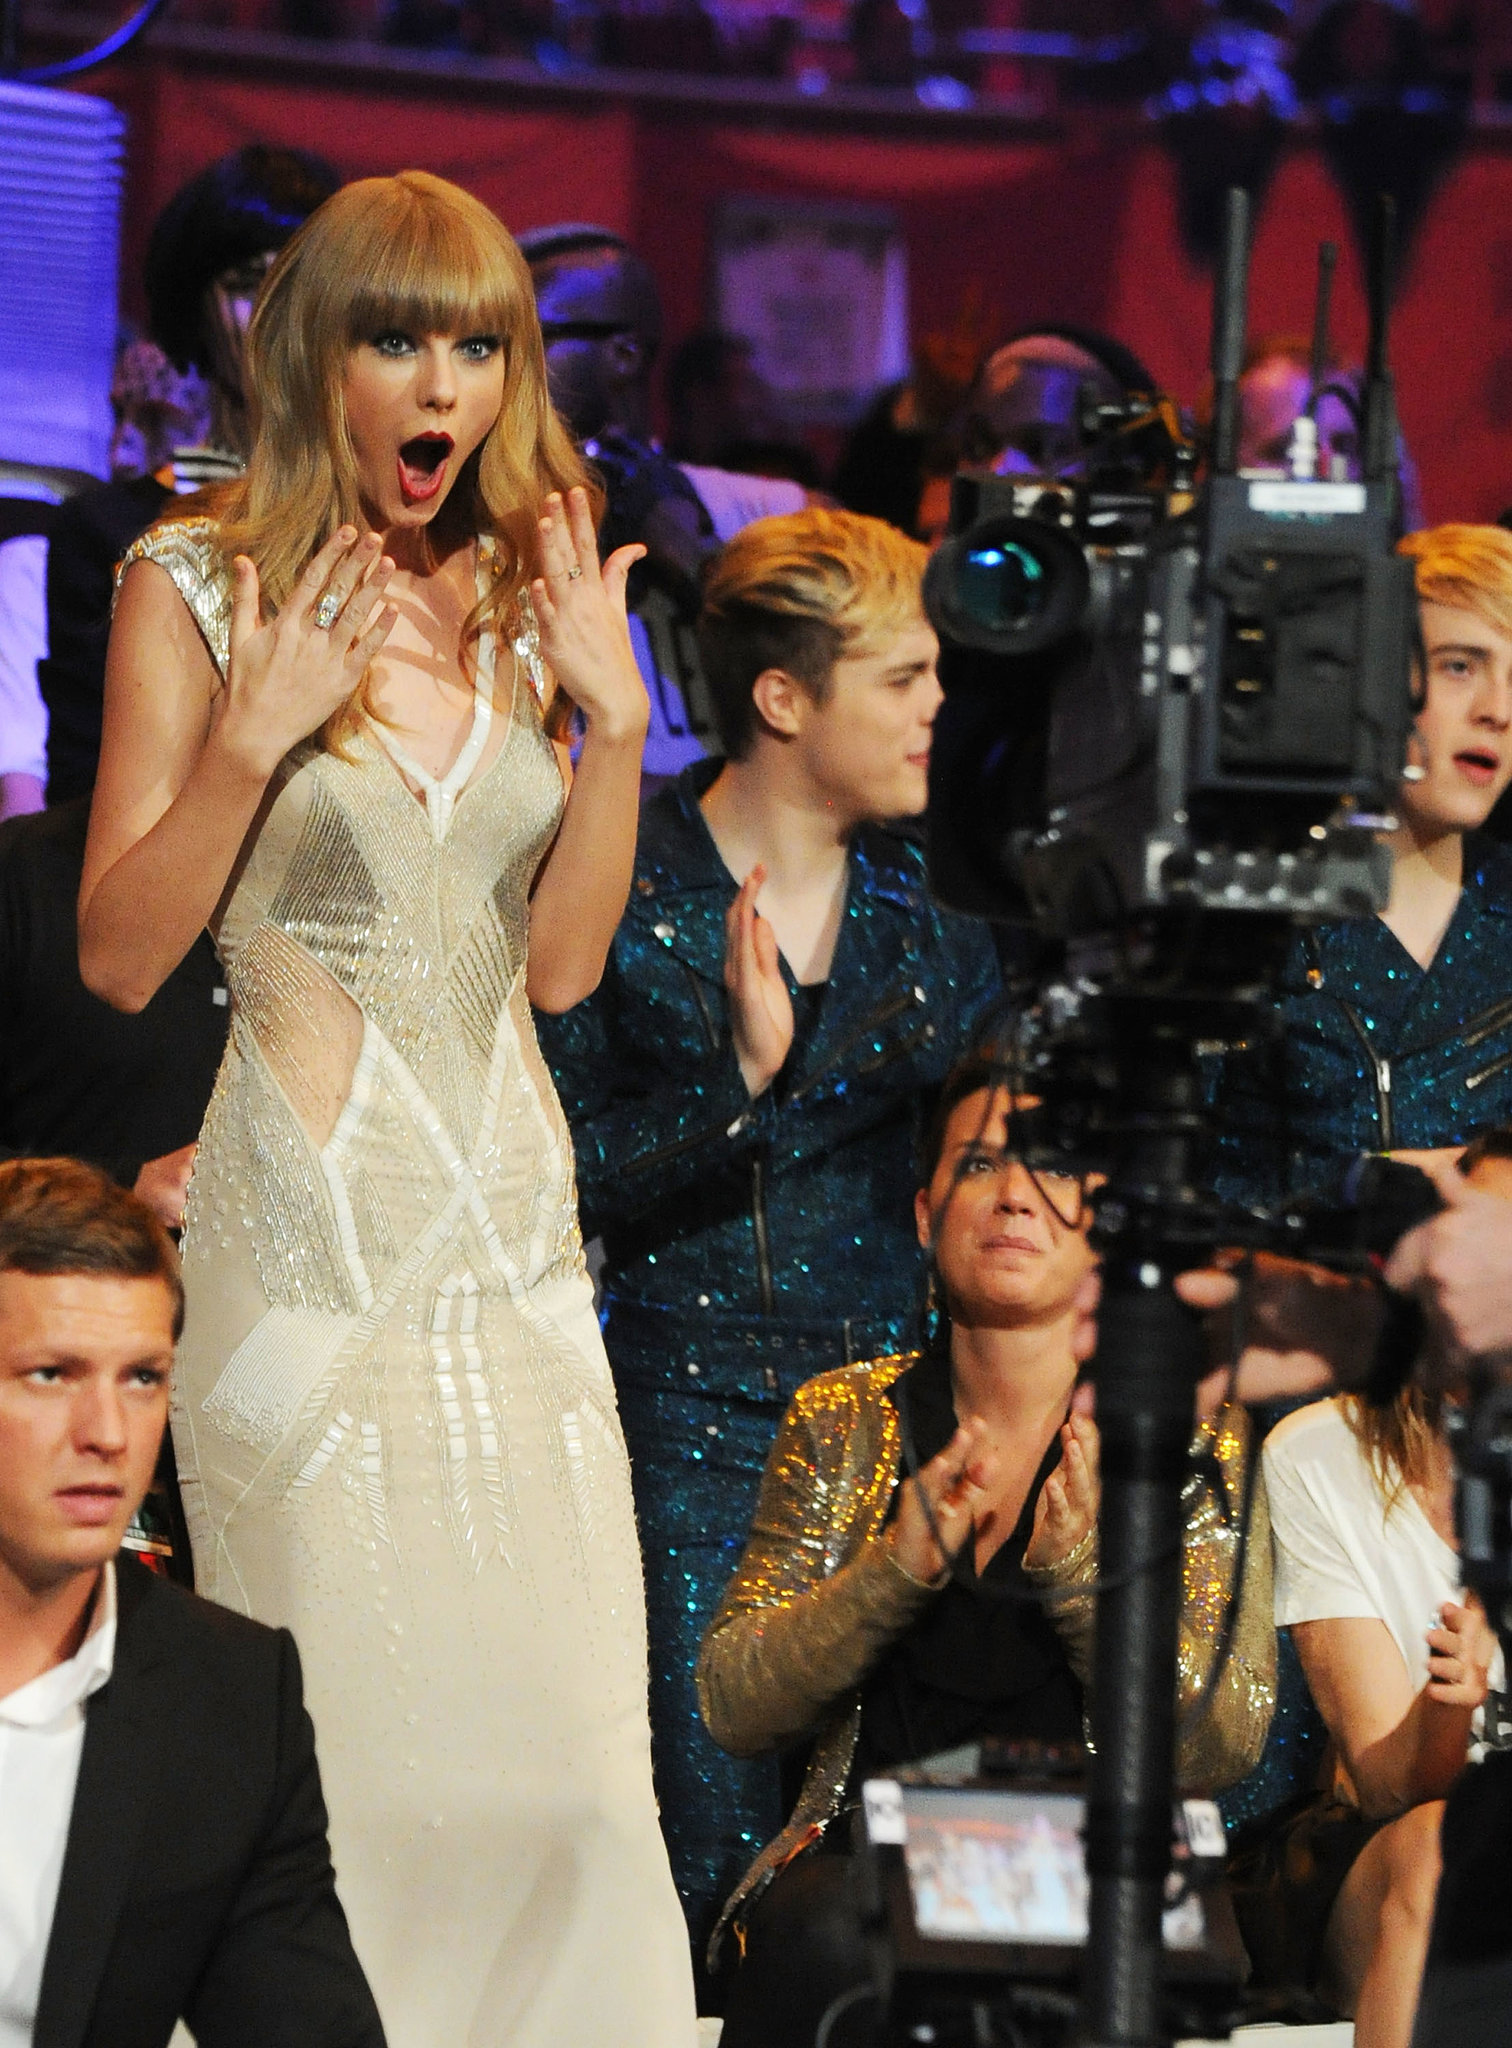 Taylor Swift was shocked to win an award at the MTV EMAs in November 2012.